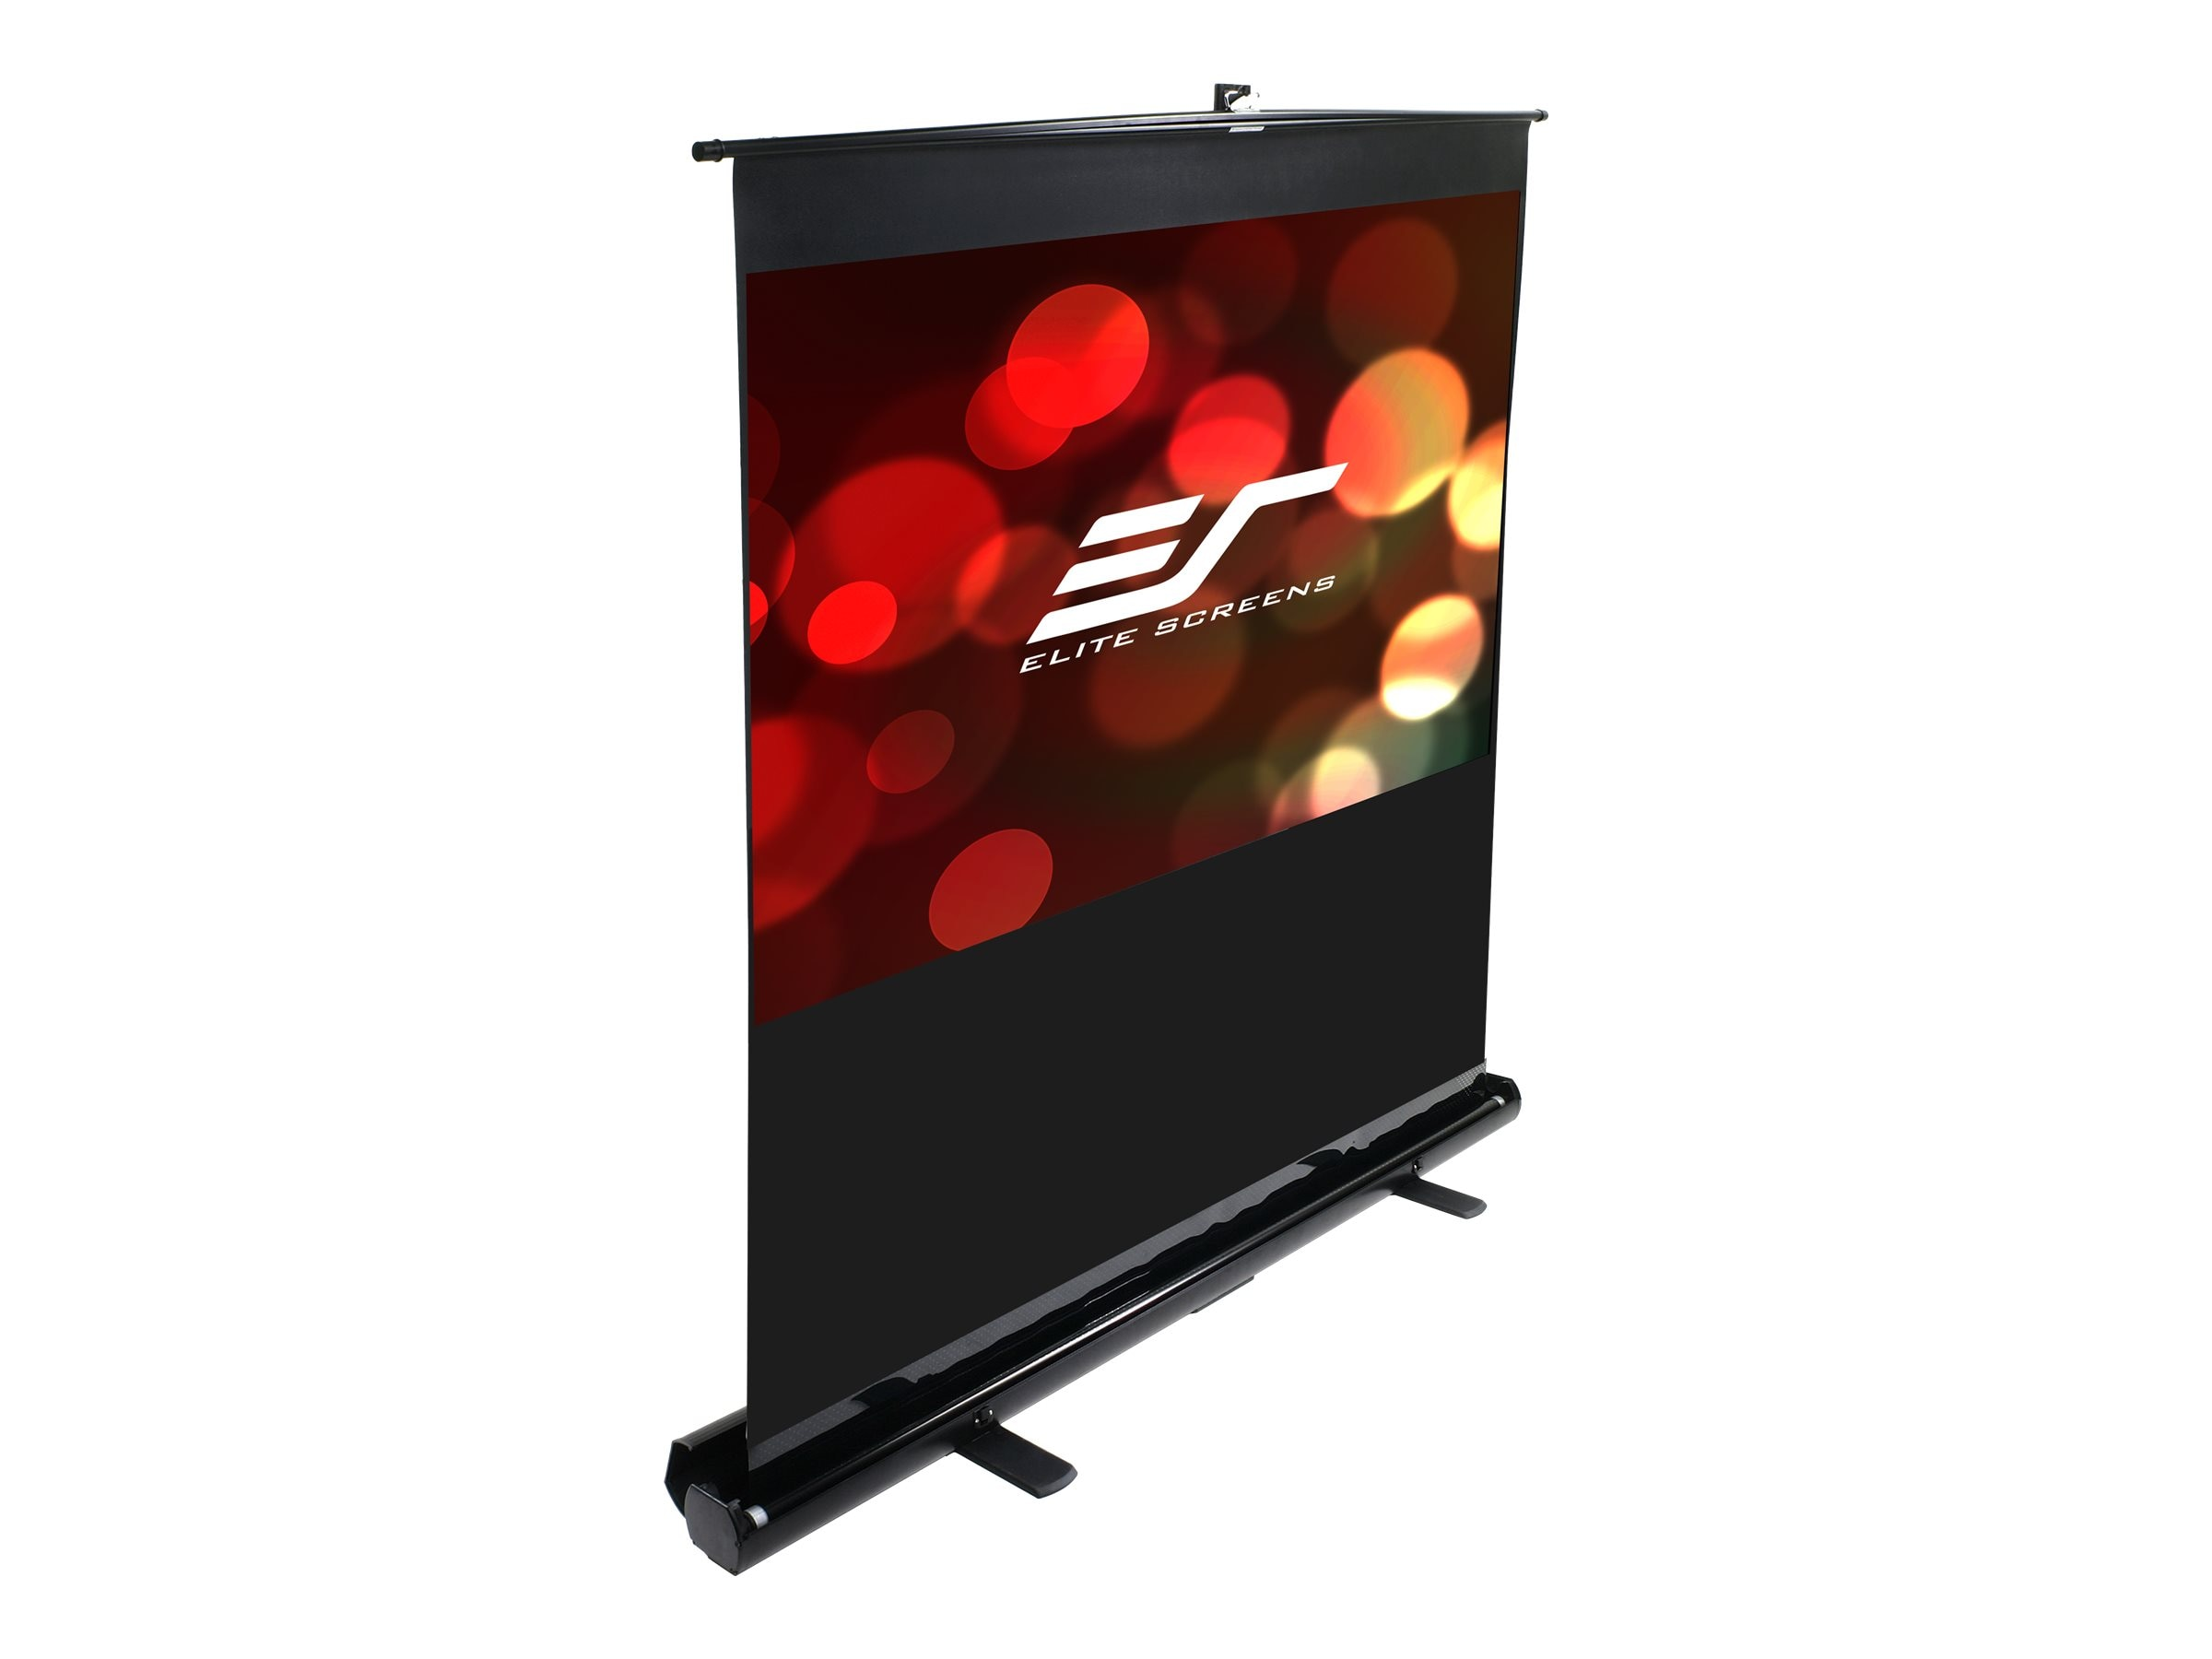 Elite ez-Cinema Series Projection Screen, Matte White, 4:3, 72in, 43x58in